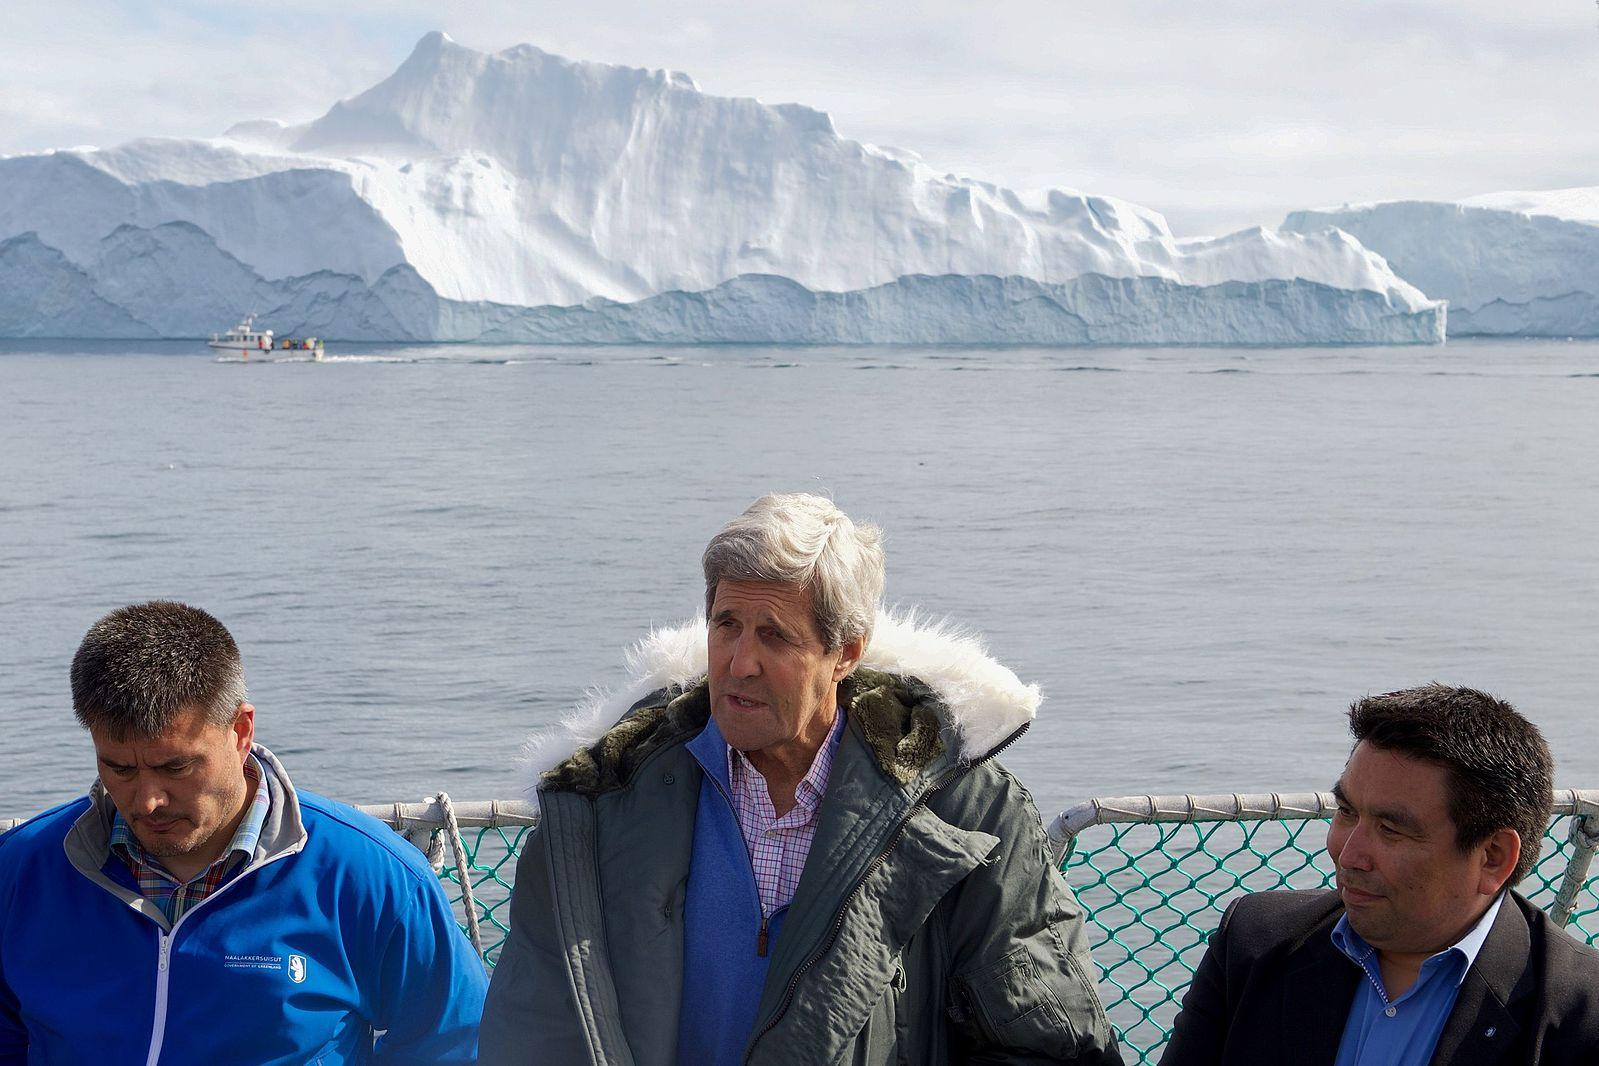 U.S. Secretary of State under the Obama Administration, John Kerry (middle) stands with Greenland's Prime Minister Kim Kielsen (left) and Greenland's Foreign Minister Vittus Qujaukitsoq (right), as they answer questions from reporters on June 17, 2016 regarding ice extent in Ilulissat, Greenland.